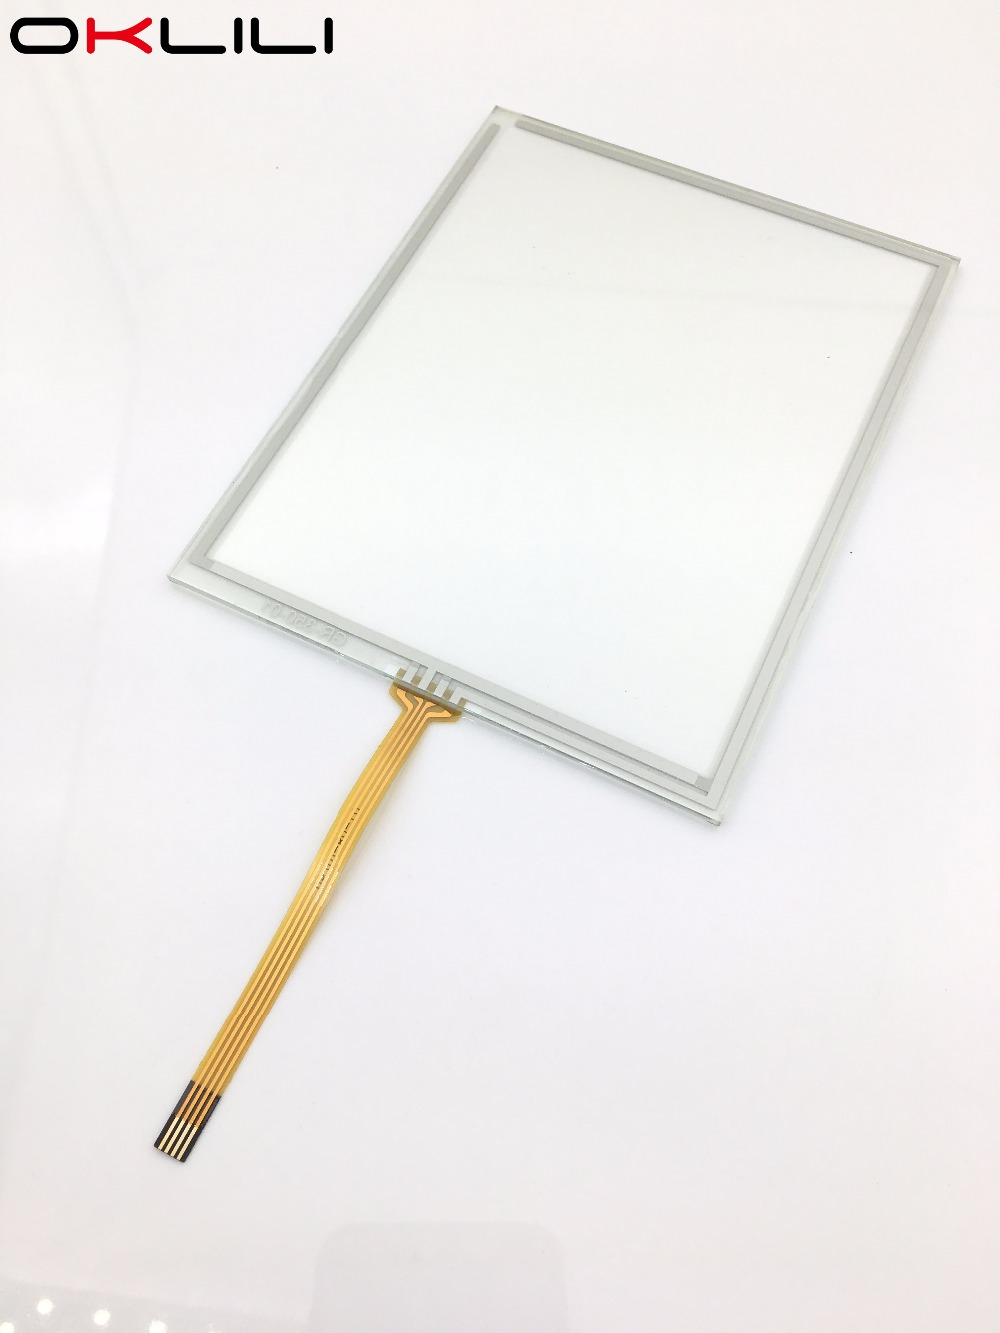 1X 4040-7809-01 LCD Touch Screen Panel for Konica Minolta Bizhub 200 222 250 282 350 362 BH200 BH250 BH350 for NEC IT2530 IT3530 аксессуар чехол alcatel onetouch 5045d pixi 4 ibox crystal transparent